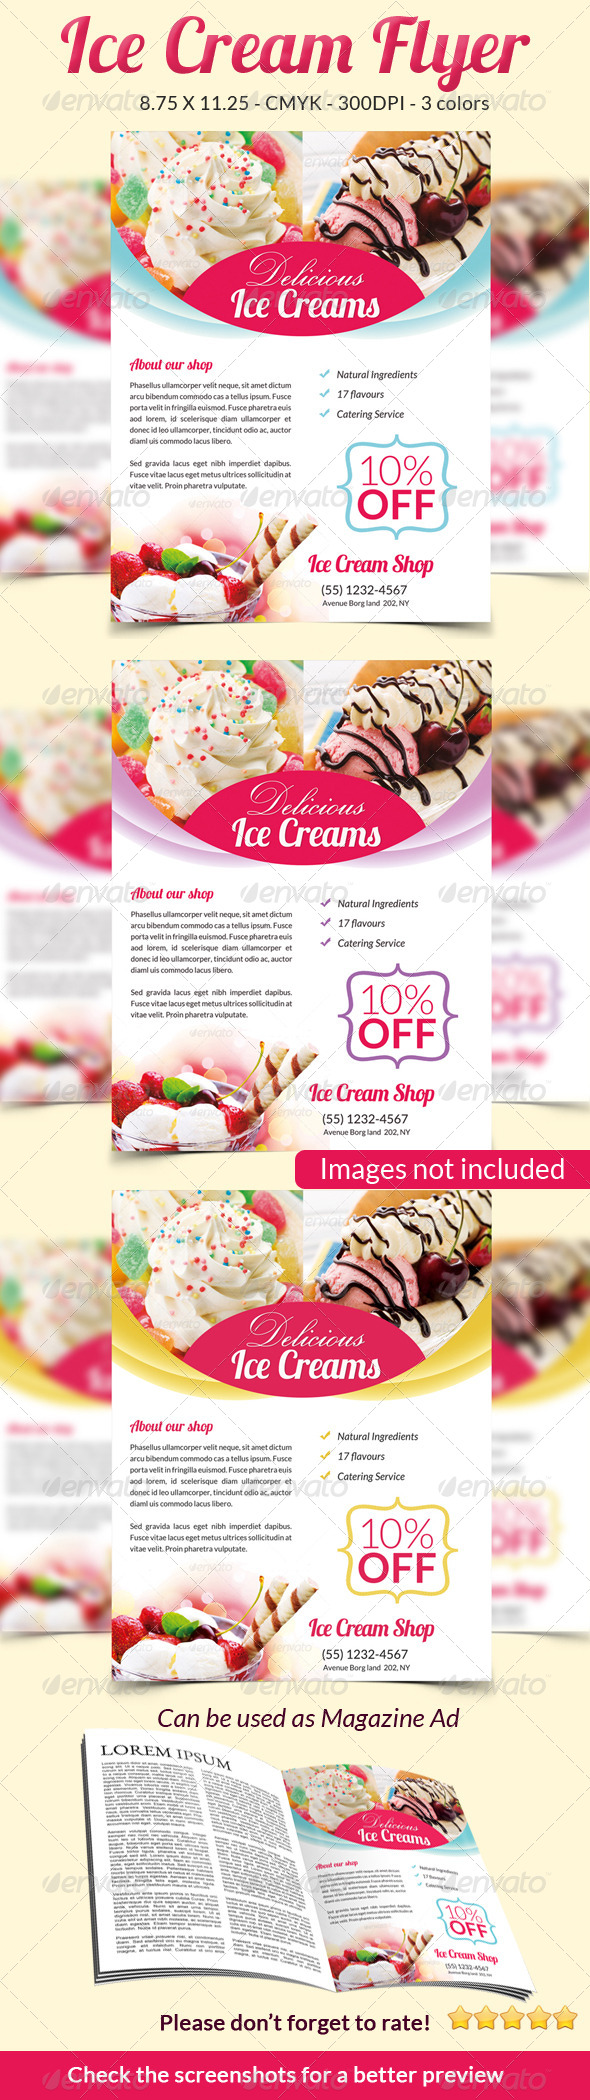 Ice Cream Flyer Magazine Ad